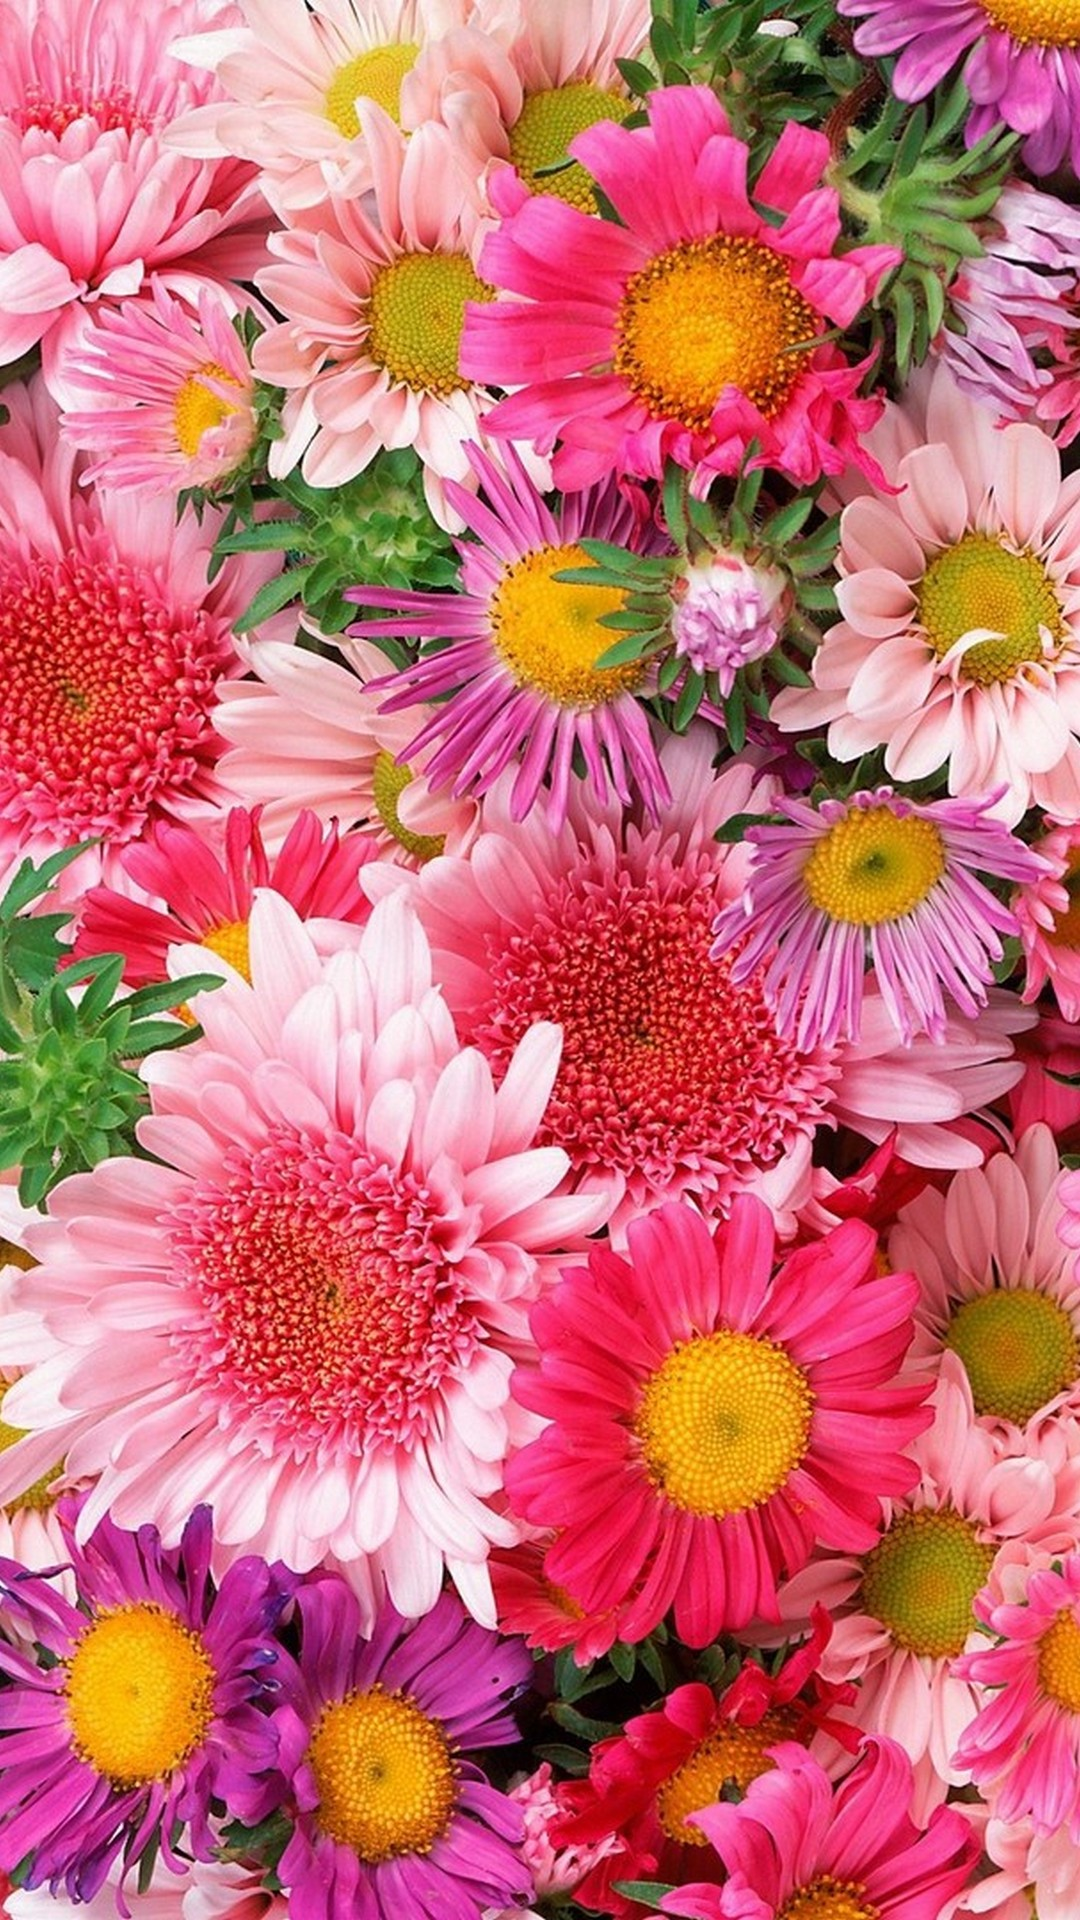 Free Photo Flower Background Many Outdoor Pretty Free